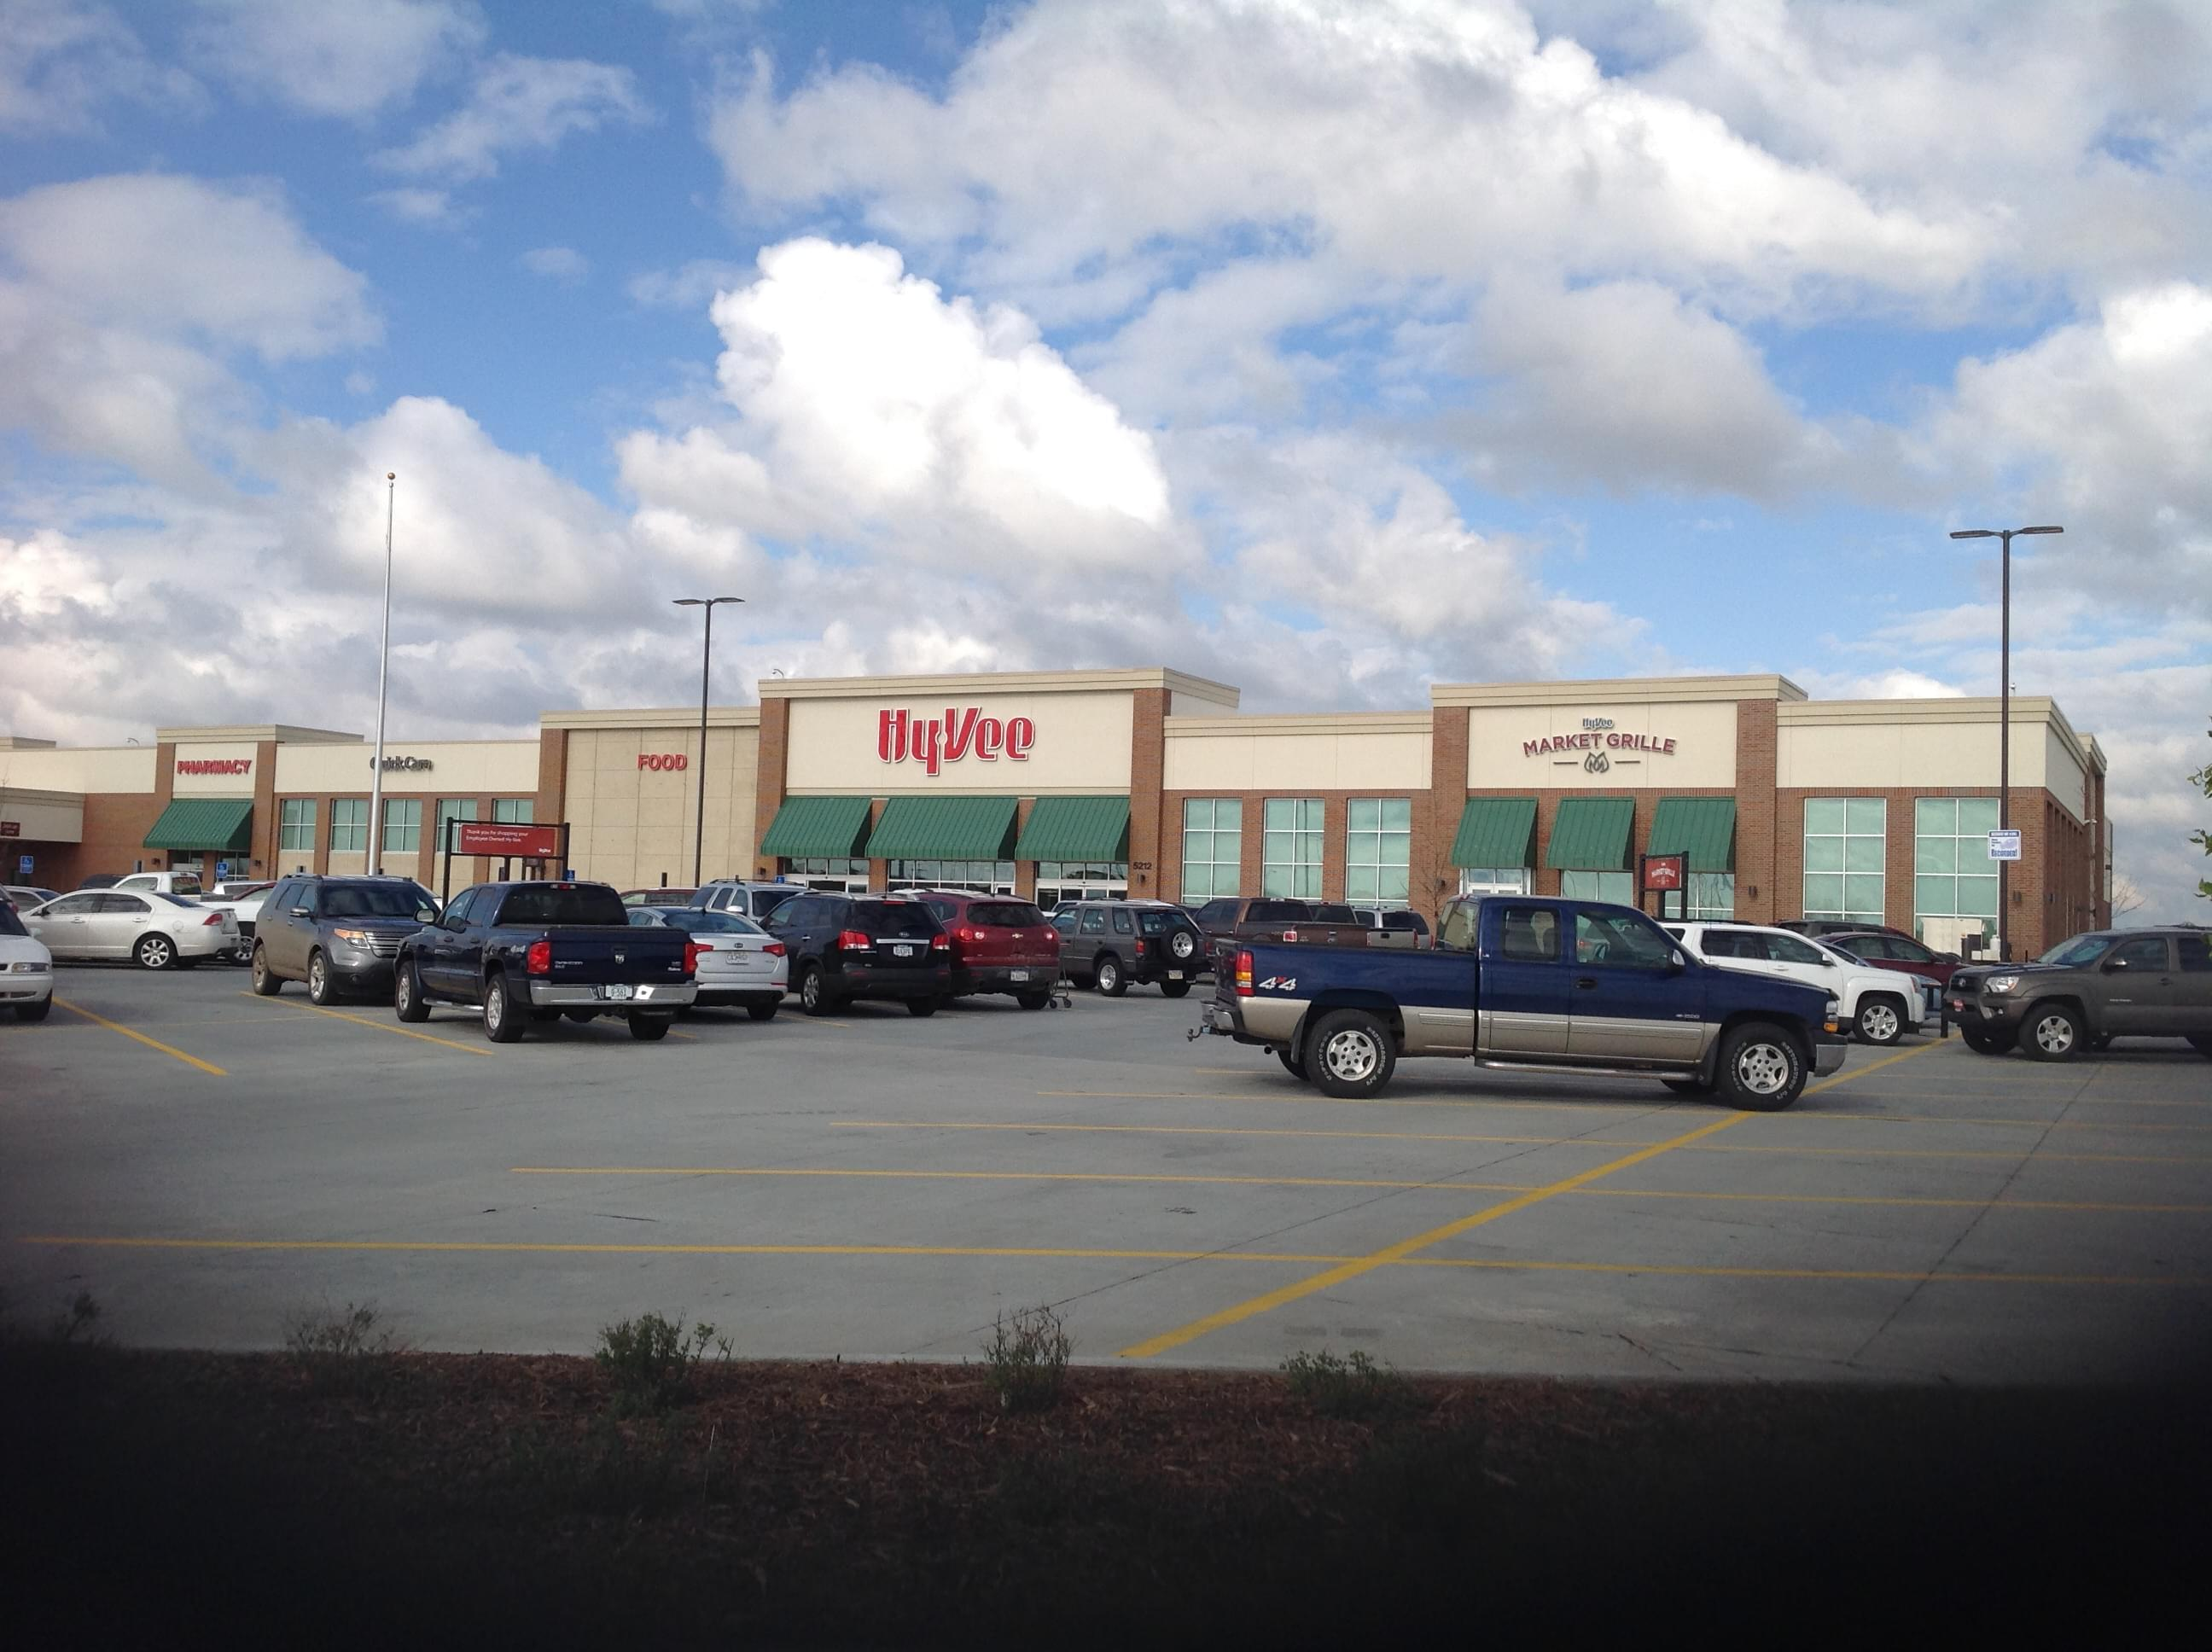 Hy-Vee to Offer COVID-19 Rapid Antibody Testing at More than 250 Locations throughout the Midwest